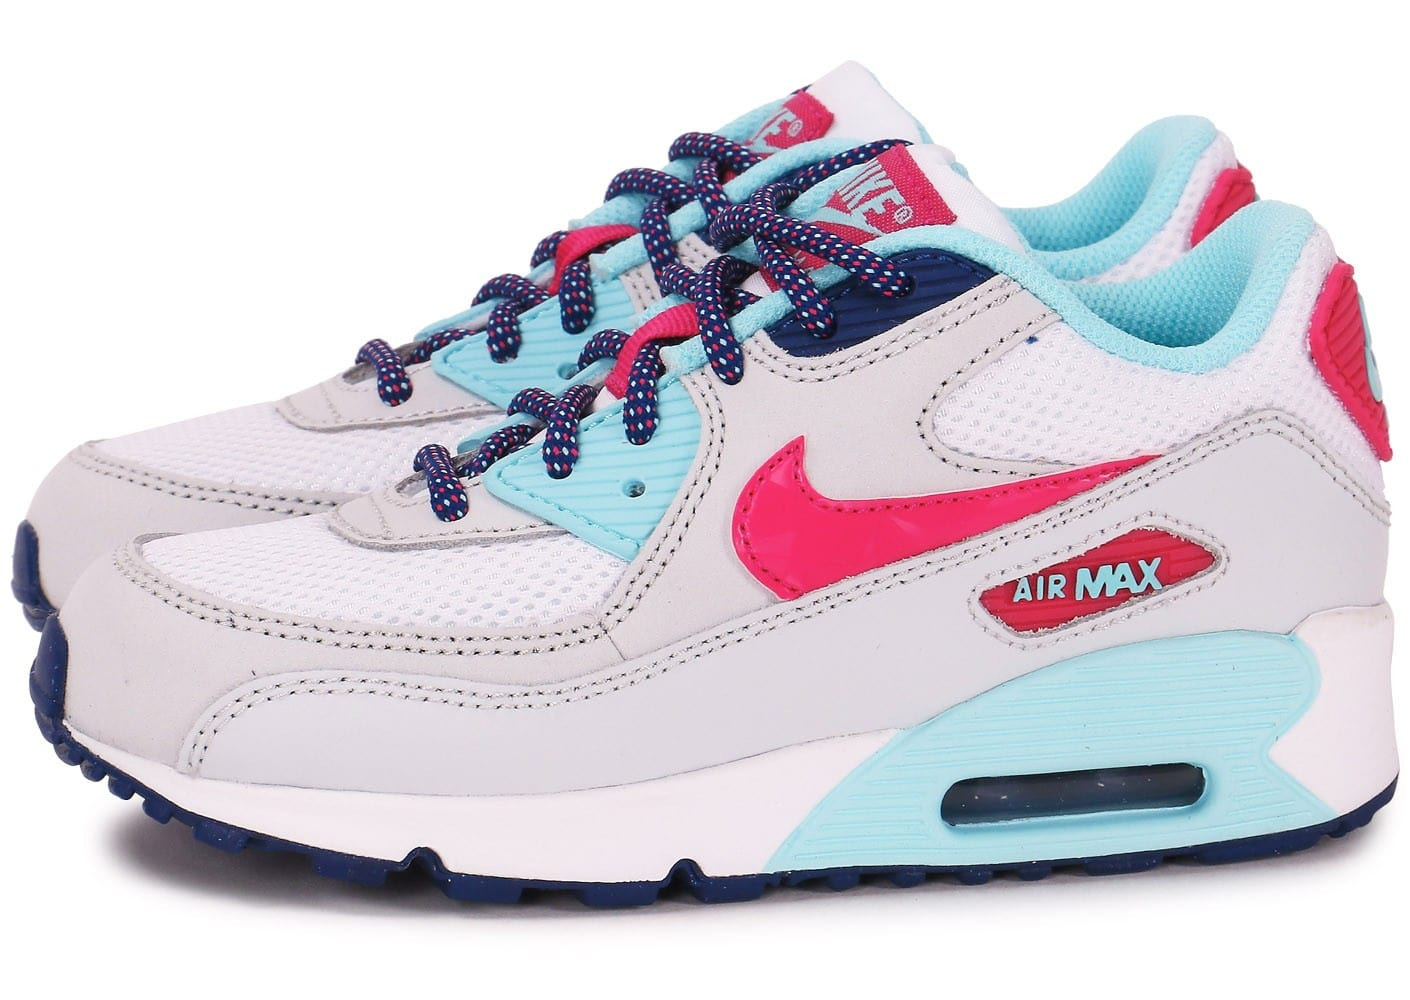 nike air max 90 mesh ps blanc et rose chaussures chaussures chausport. Black Bedroom Furniture Sets. Home Design Ideas